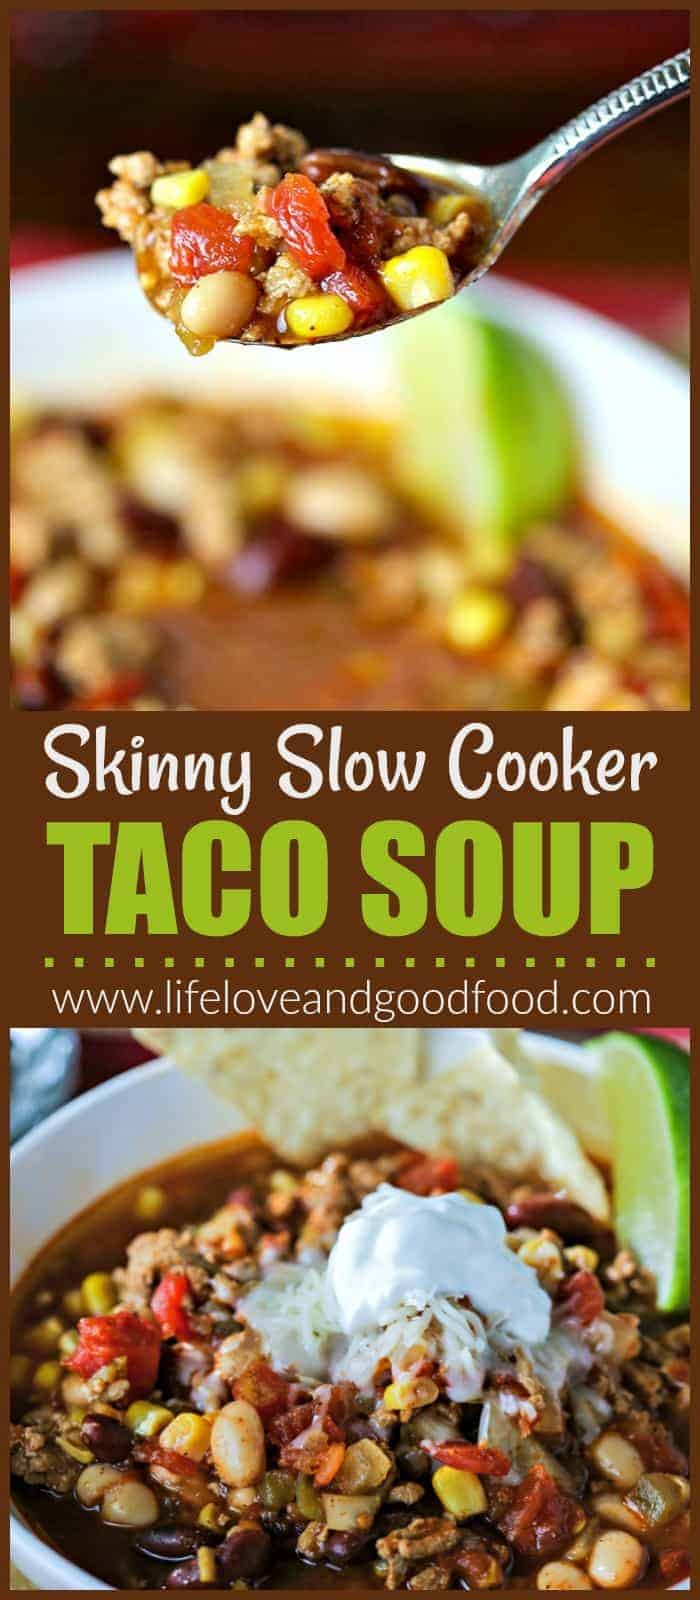 Skinny Taco Soup made in the slow cooker with ground turkey is packed with flavor and super simple to prepare. #healthysoup #soup #tacosoup